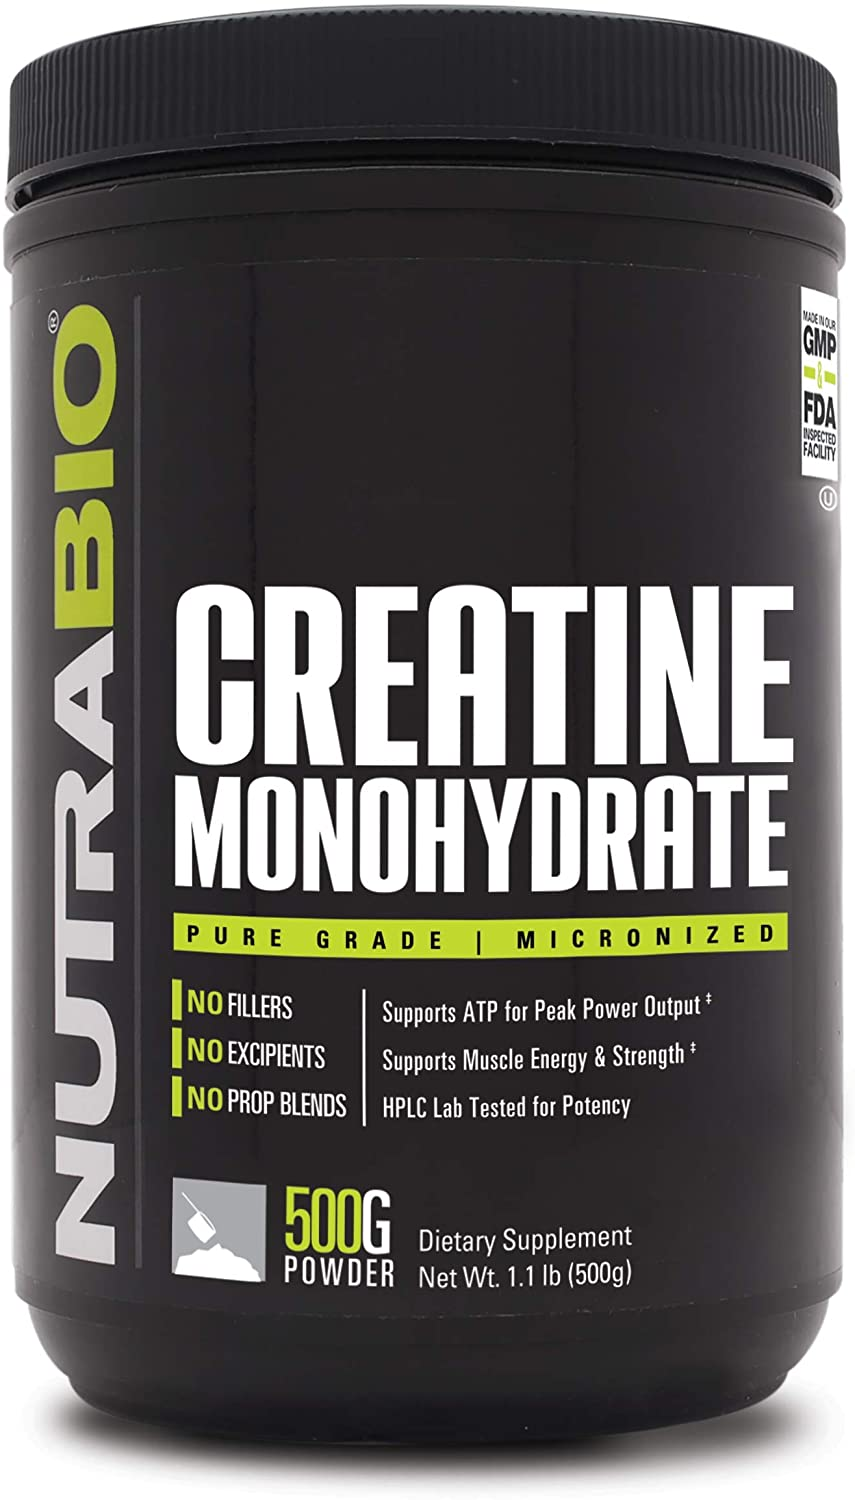 NutraBio Creatine Monohydrate (500 Grams) - Micronized, Unflavored, HPLC Tested